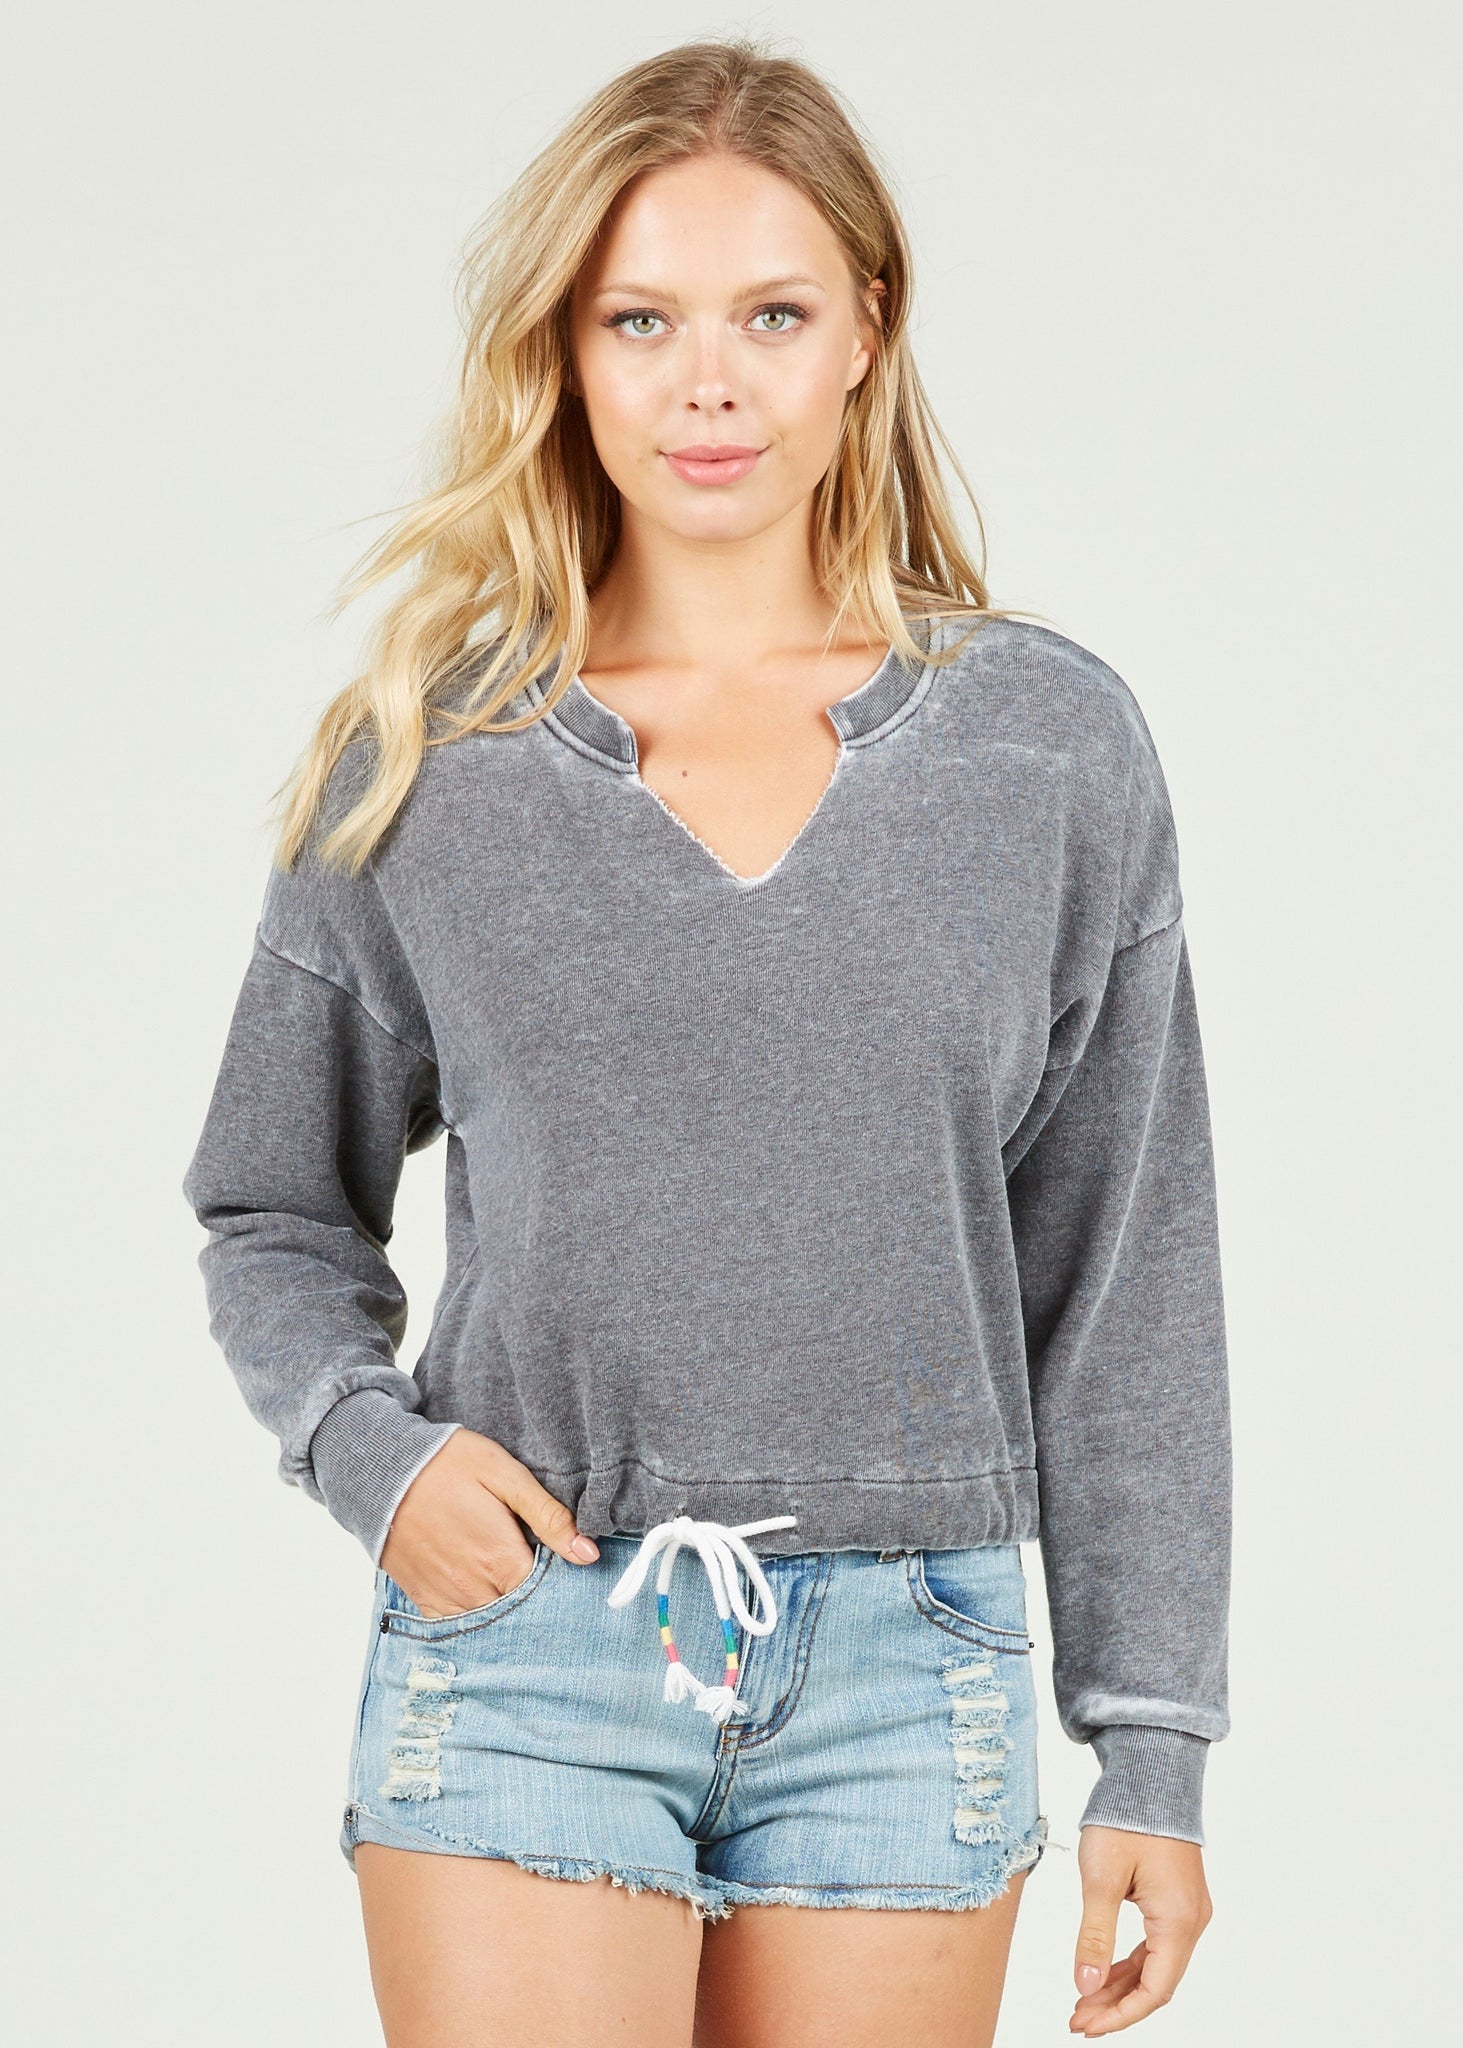 Island Girl Pullover